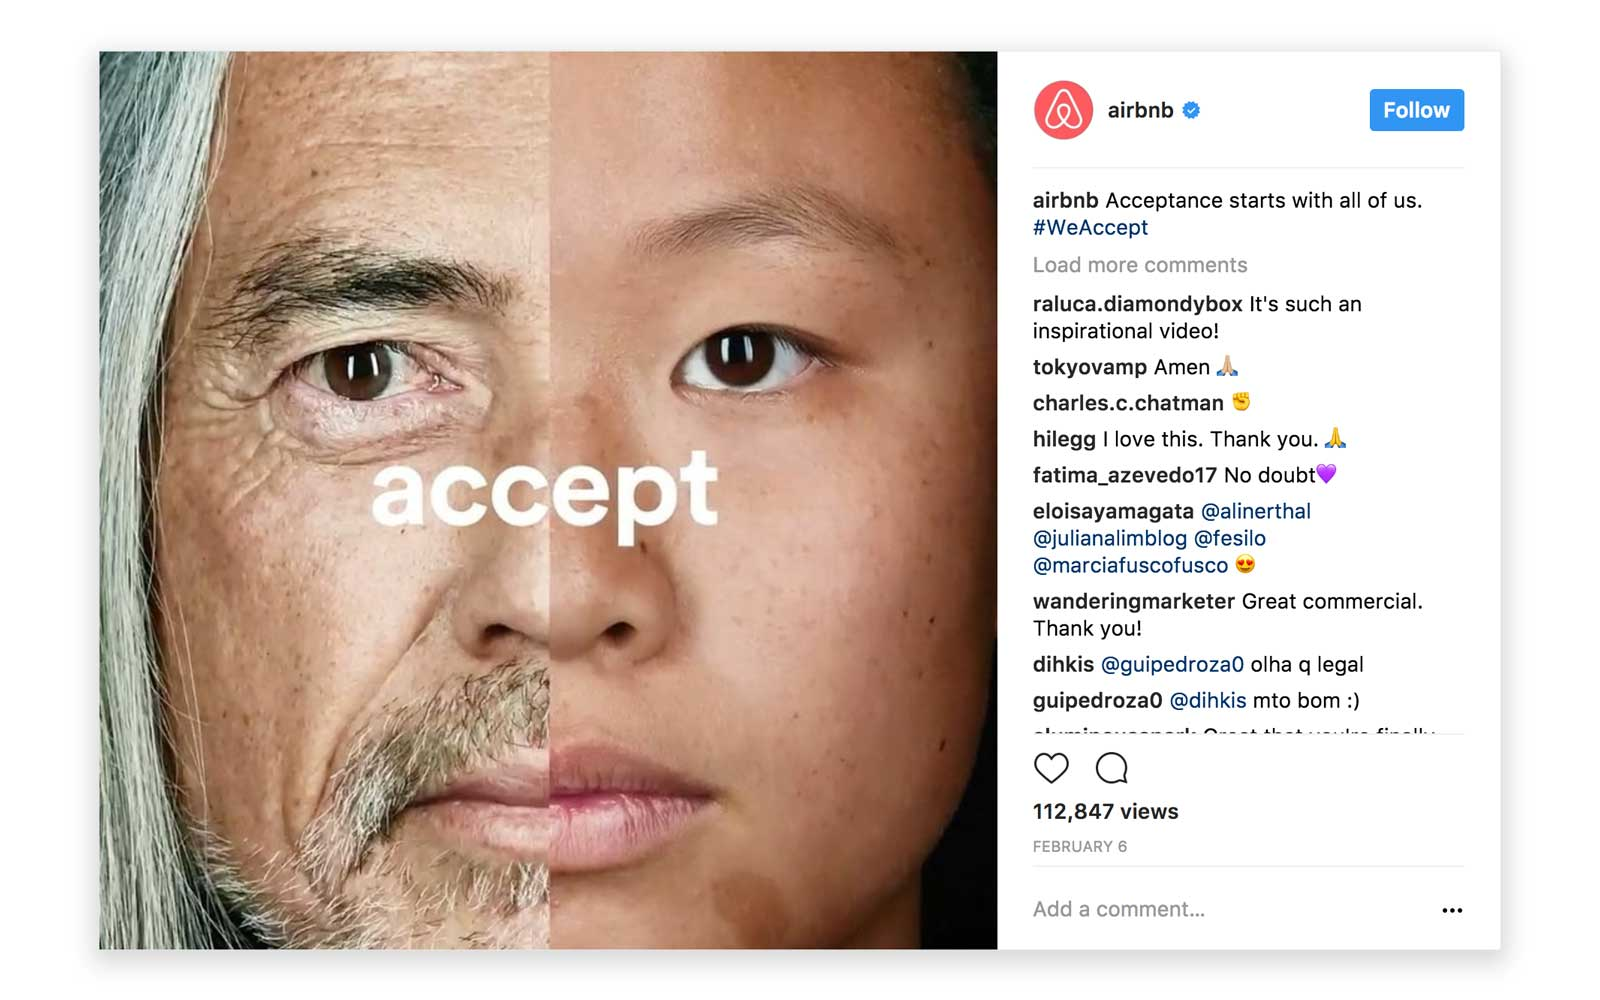 airbnb weaccept instagram post